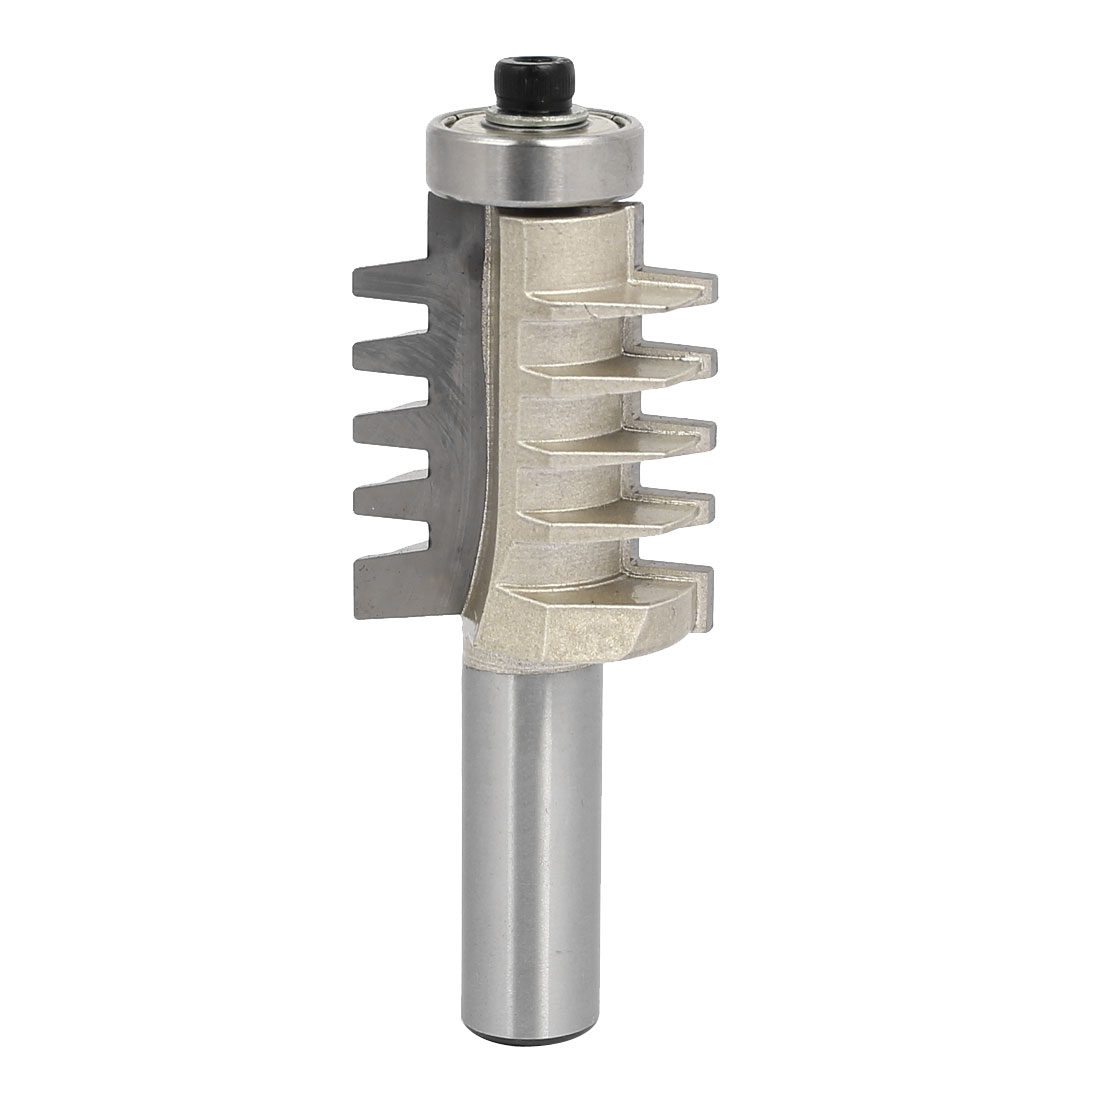 1/2-inch Shank 1-1/4-inch Cutting Dia Reversible Finger Joint Glue Router Bit